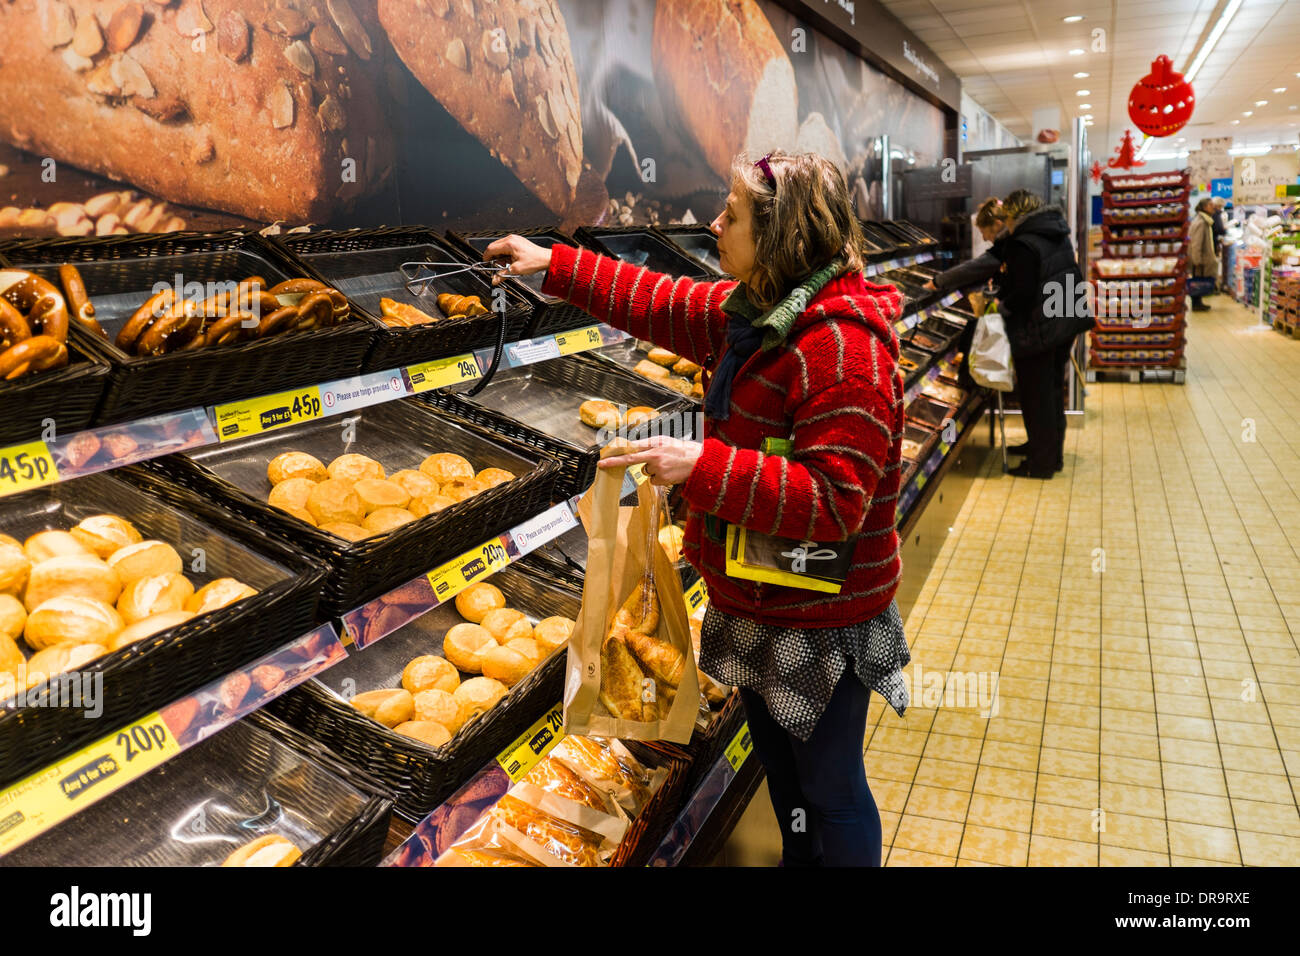 A middle aged woman buying fresh baked in-store croissants and other bakery products in Lidl supermarket, UK - Stock Image